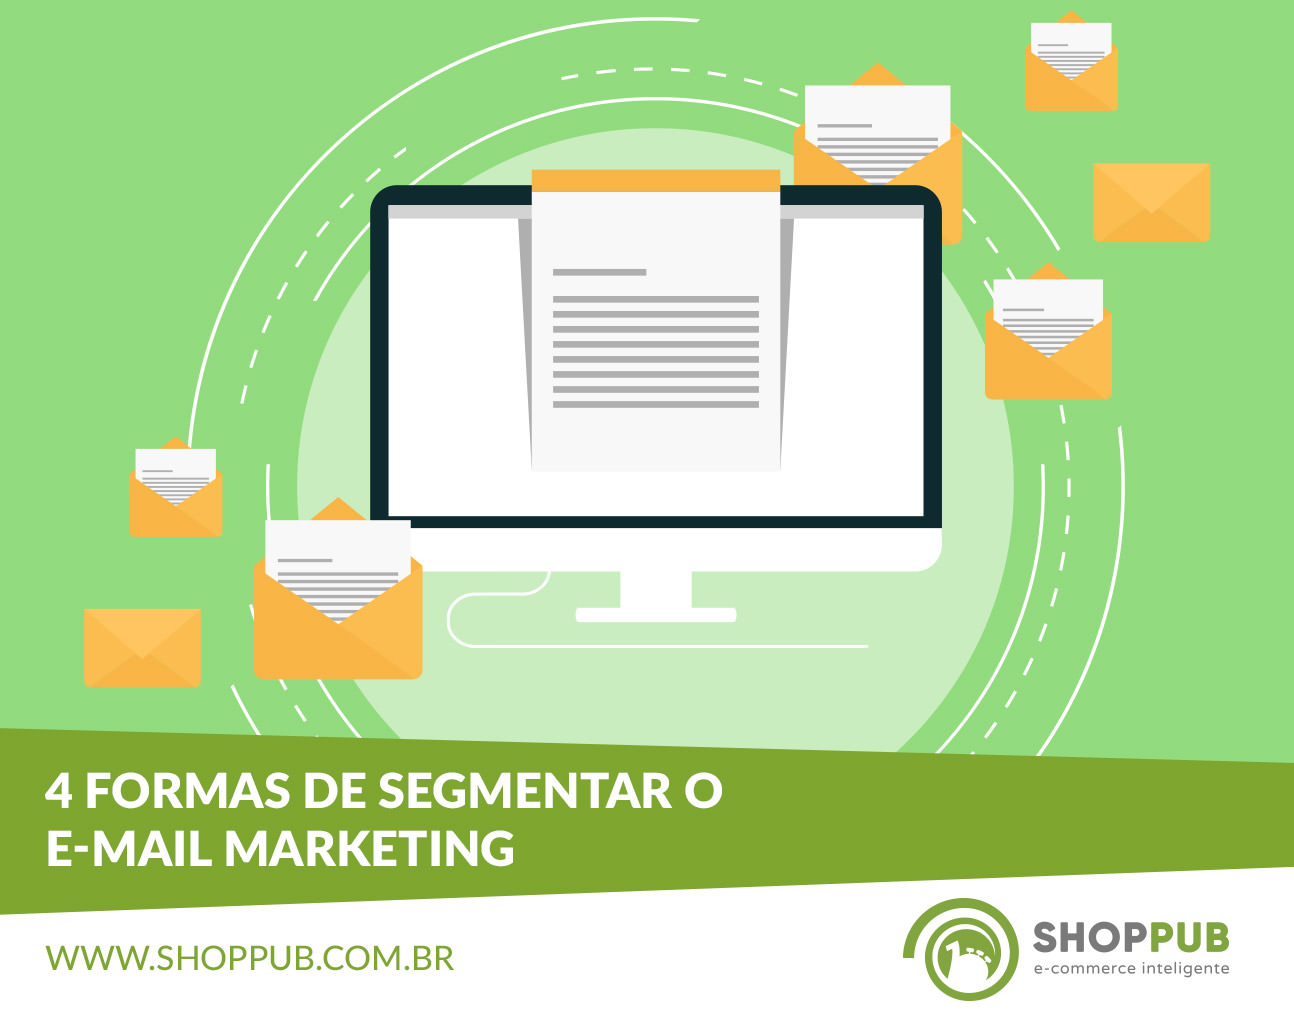 4 formas de segmentar o e-mail marketing